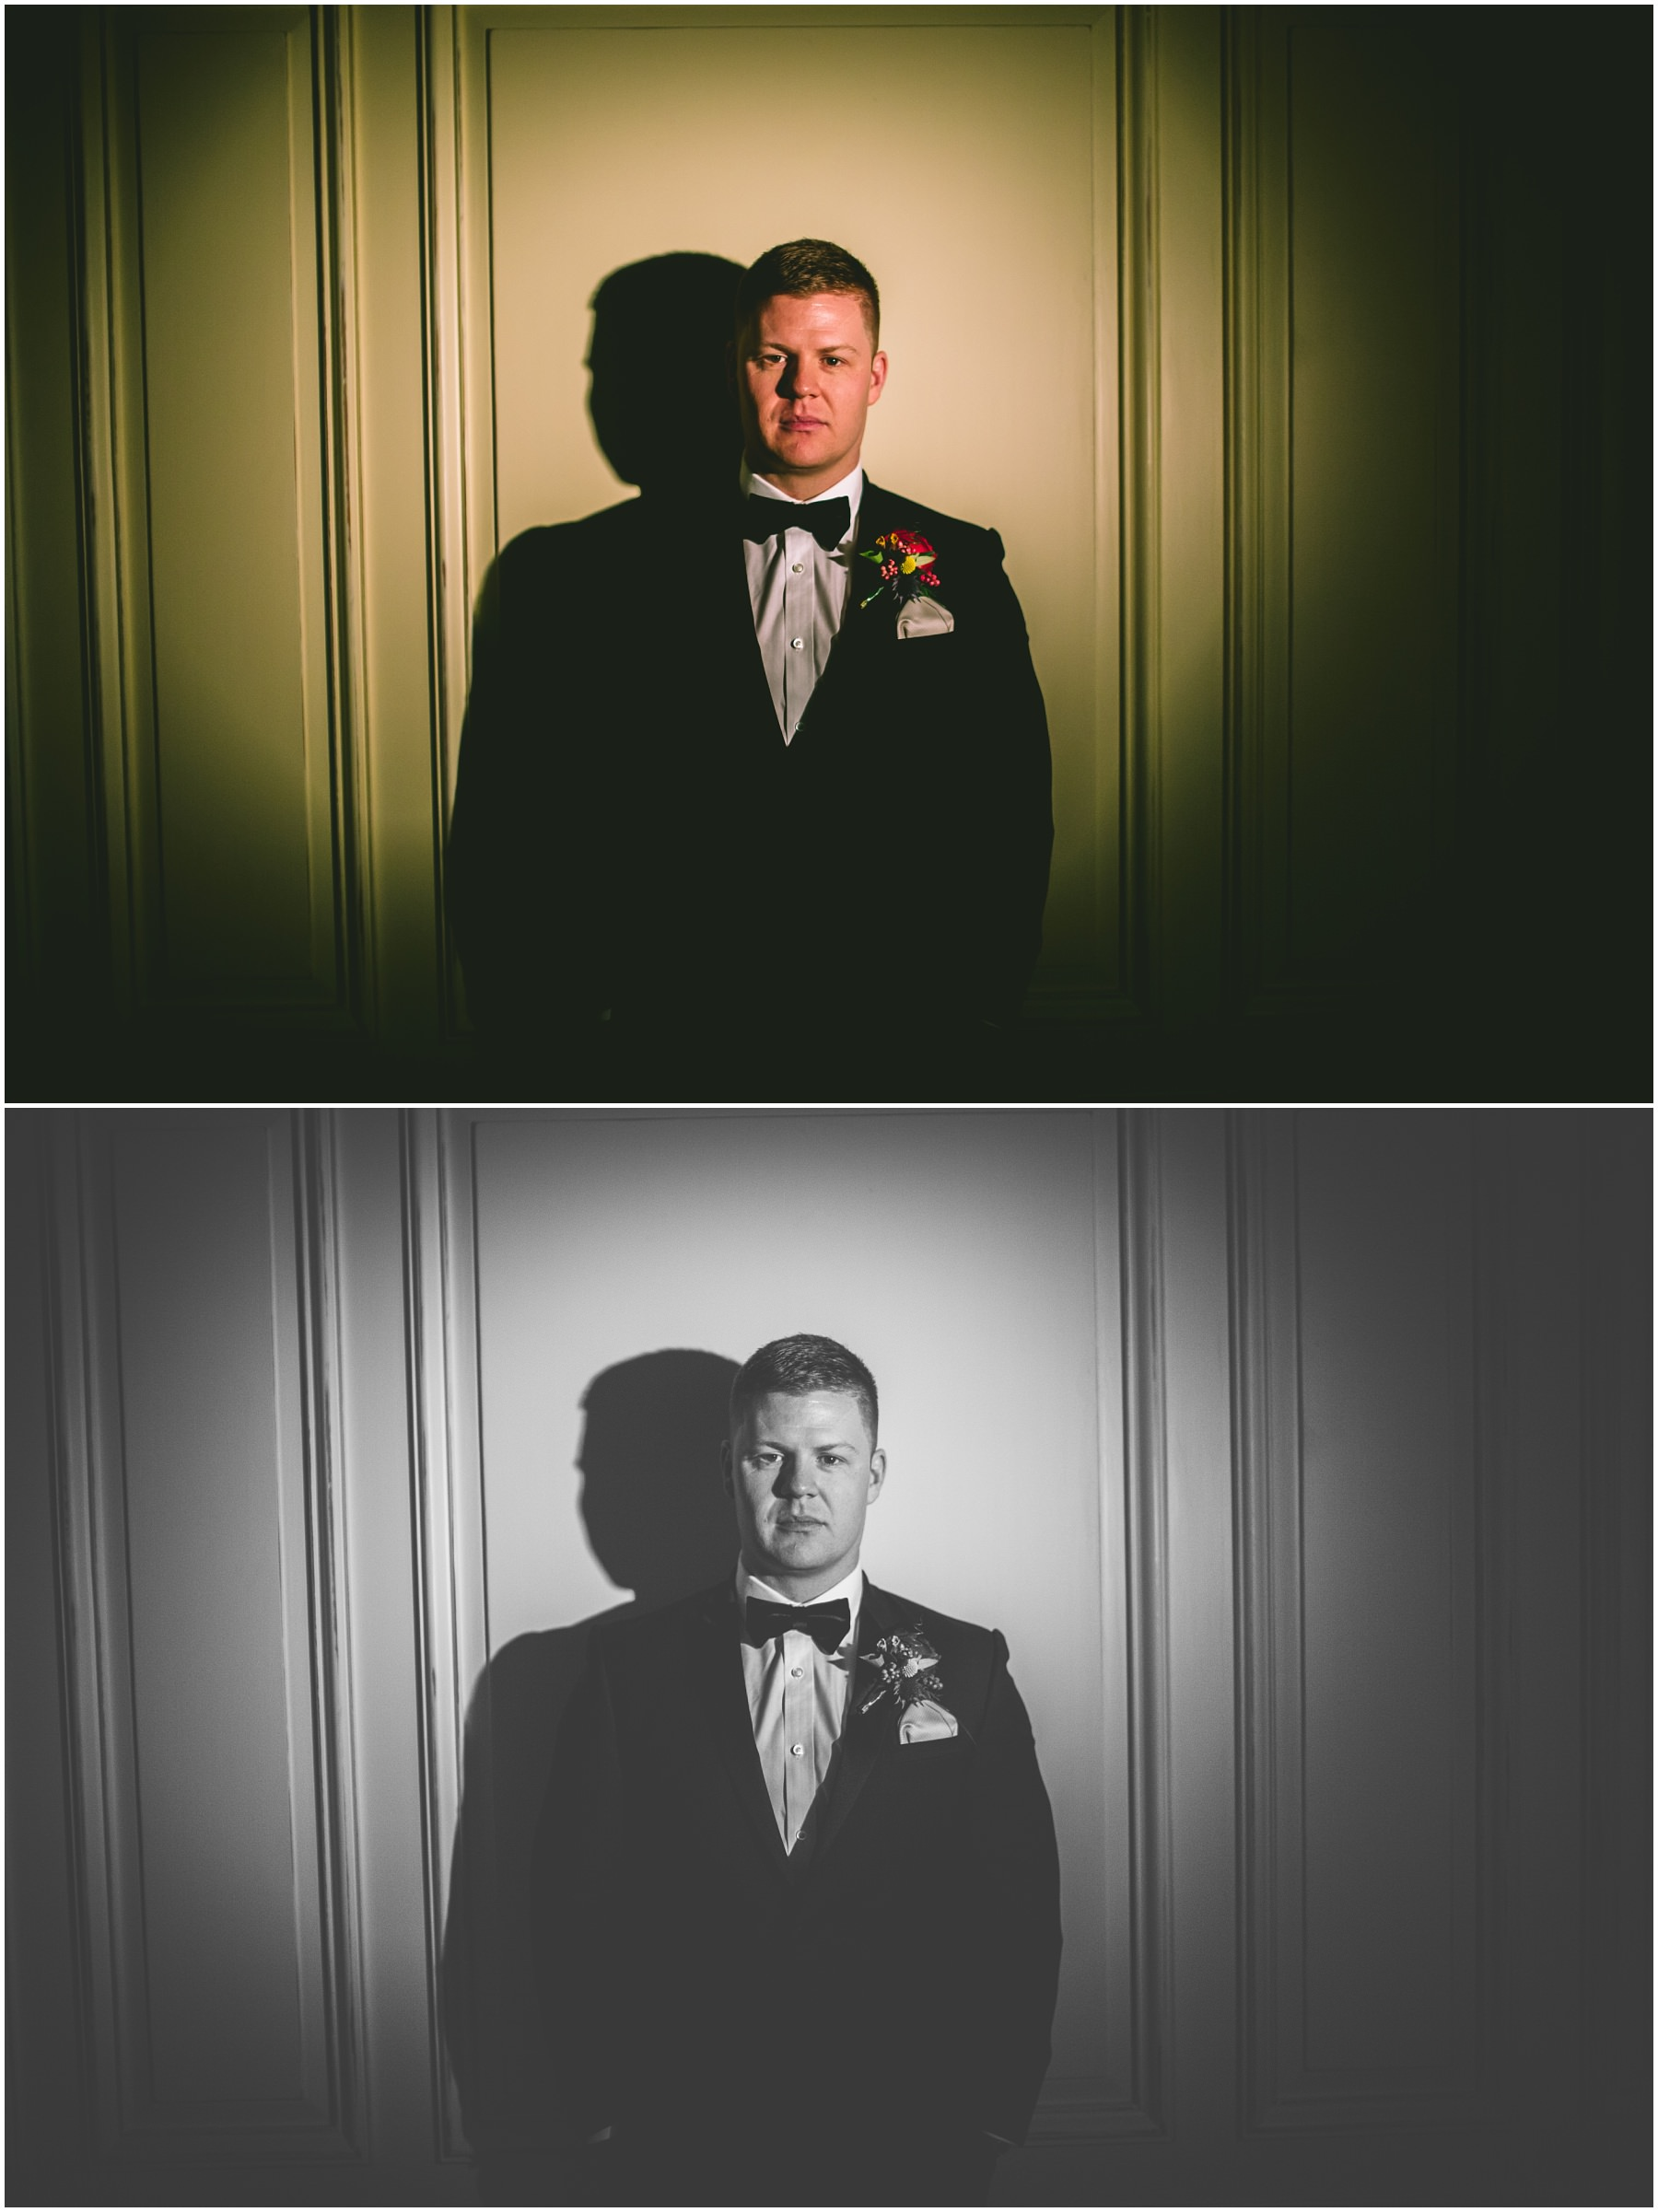 Groom portrait lit with a spot light